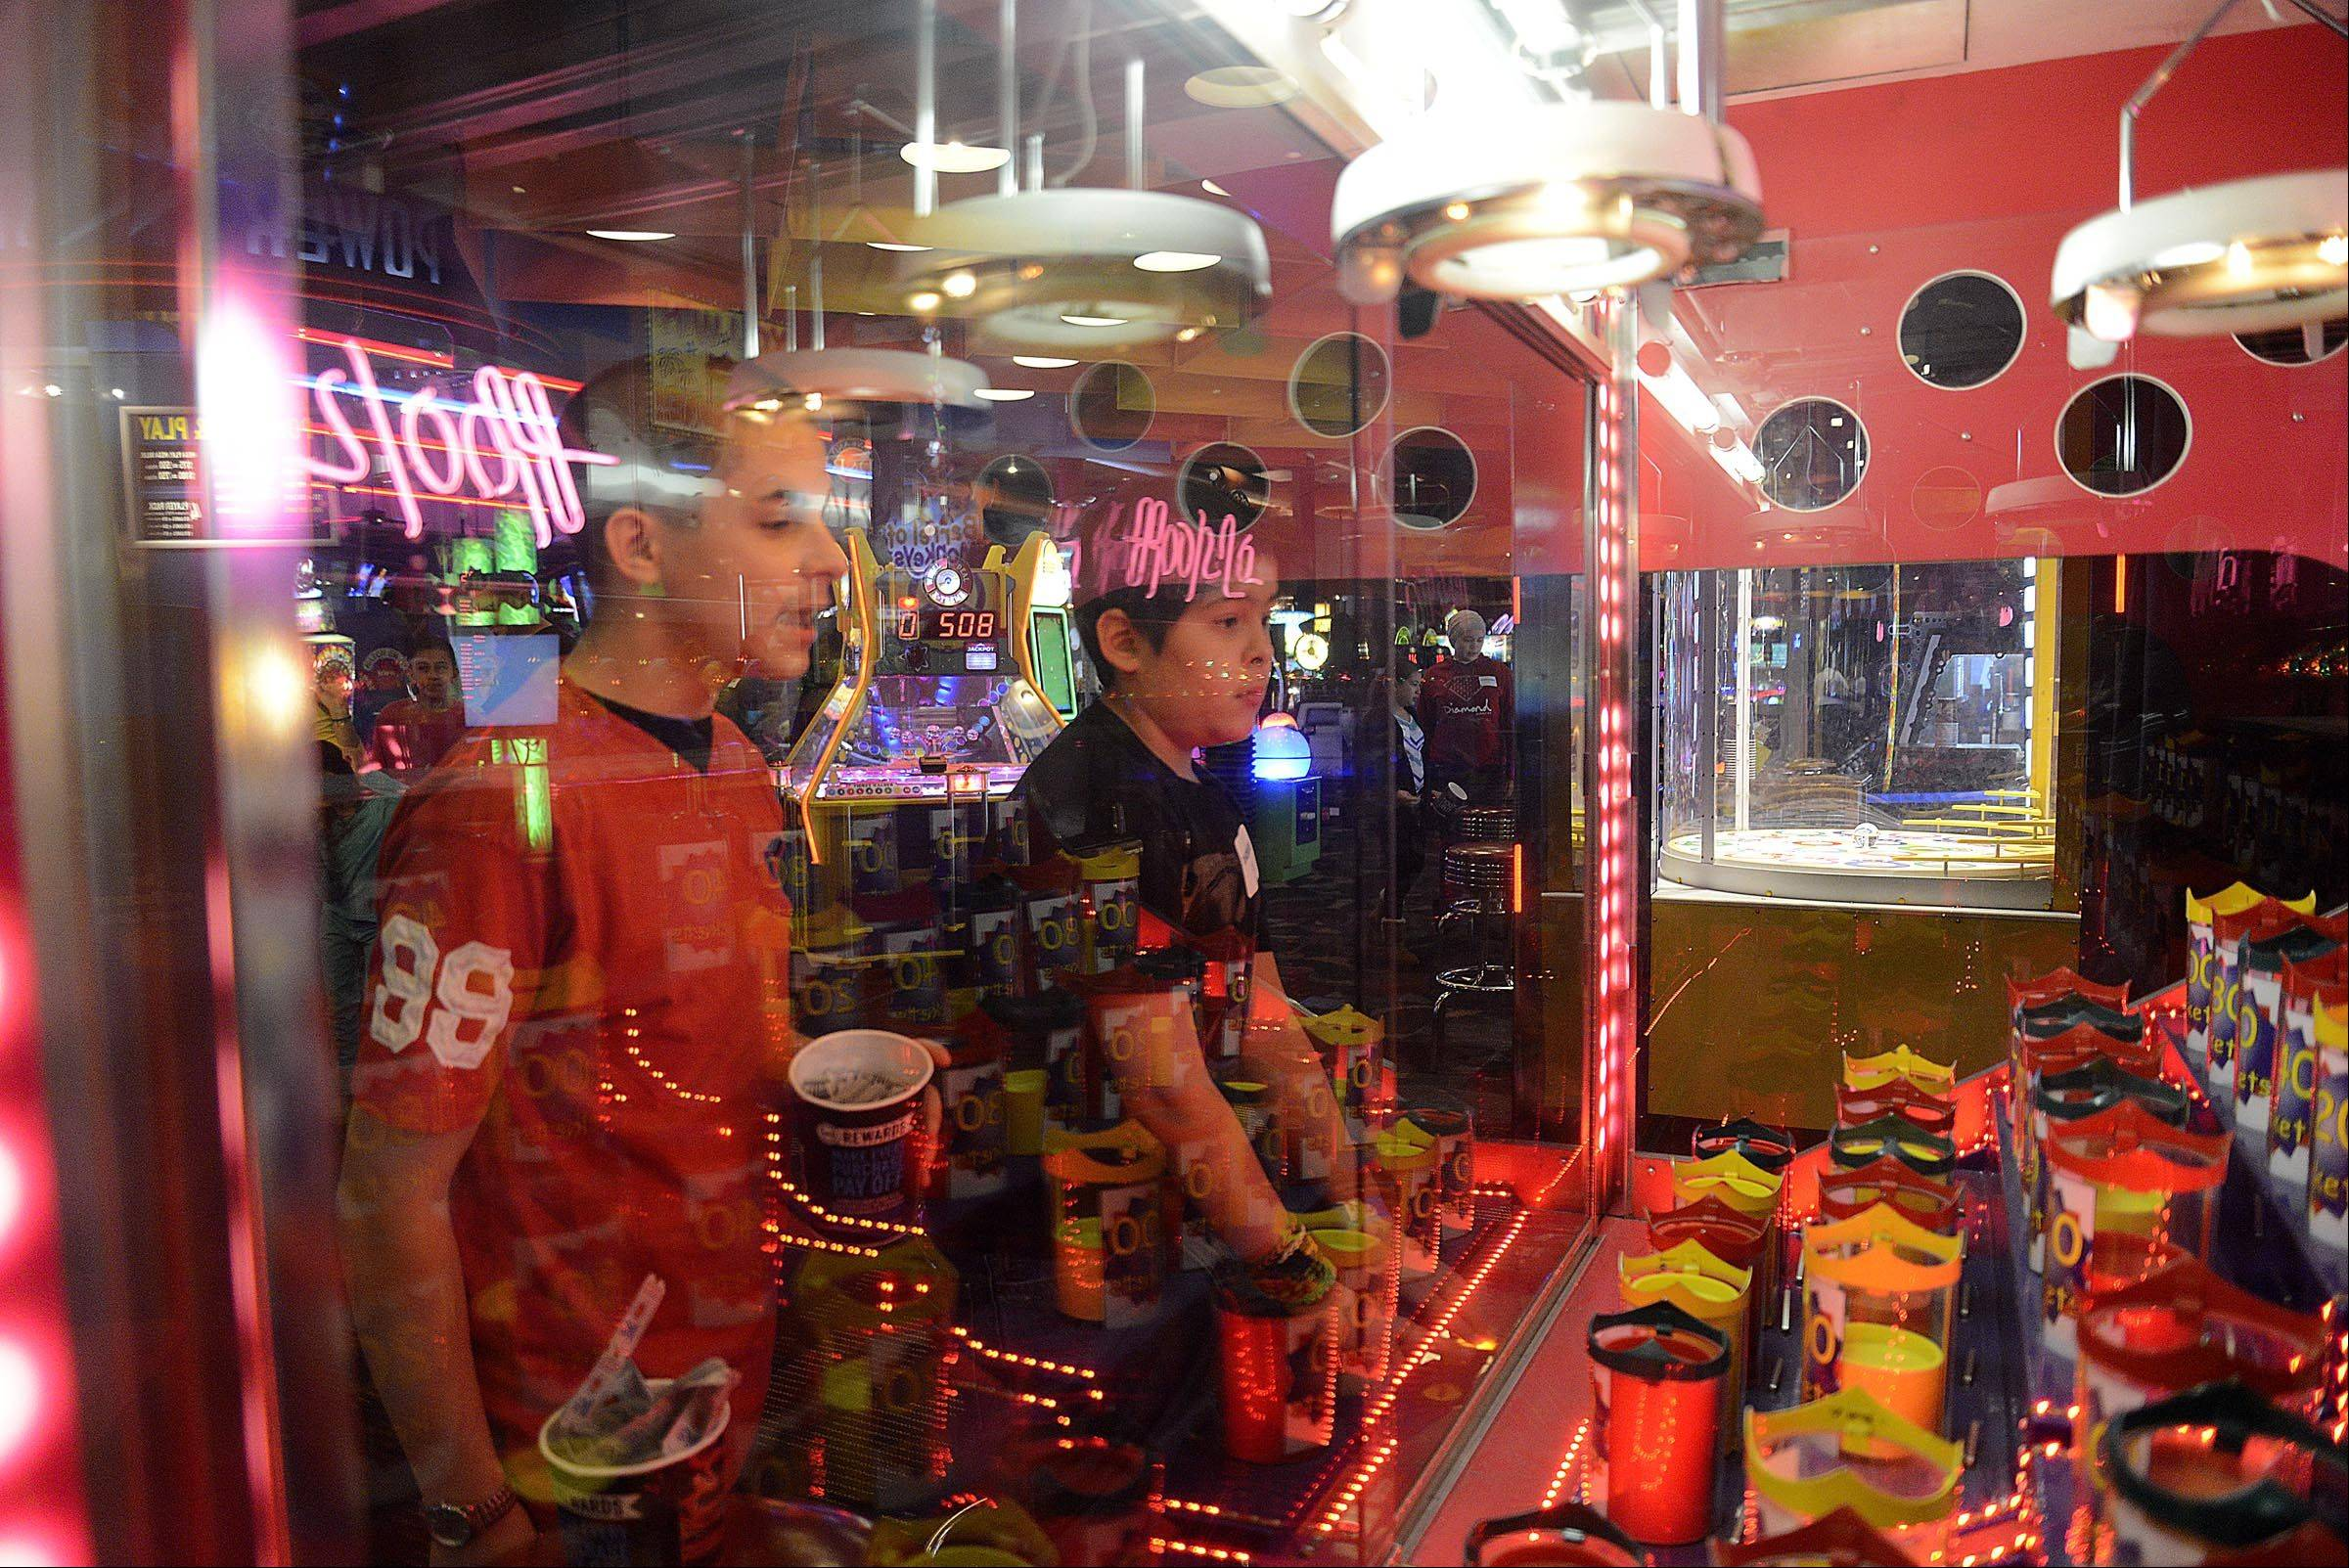 Zachary Aceves, 10, right, of Chicago, plays a game as his older brother Alex, 16, coaches him Sunday at Dave and Buster�s in Addison. They were there for the Leukemia Research Foundation Kids Party. Zachary is a six-year leukemia survivor.